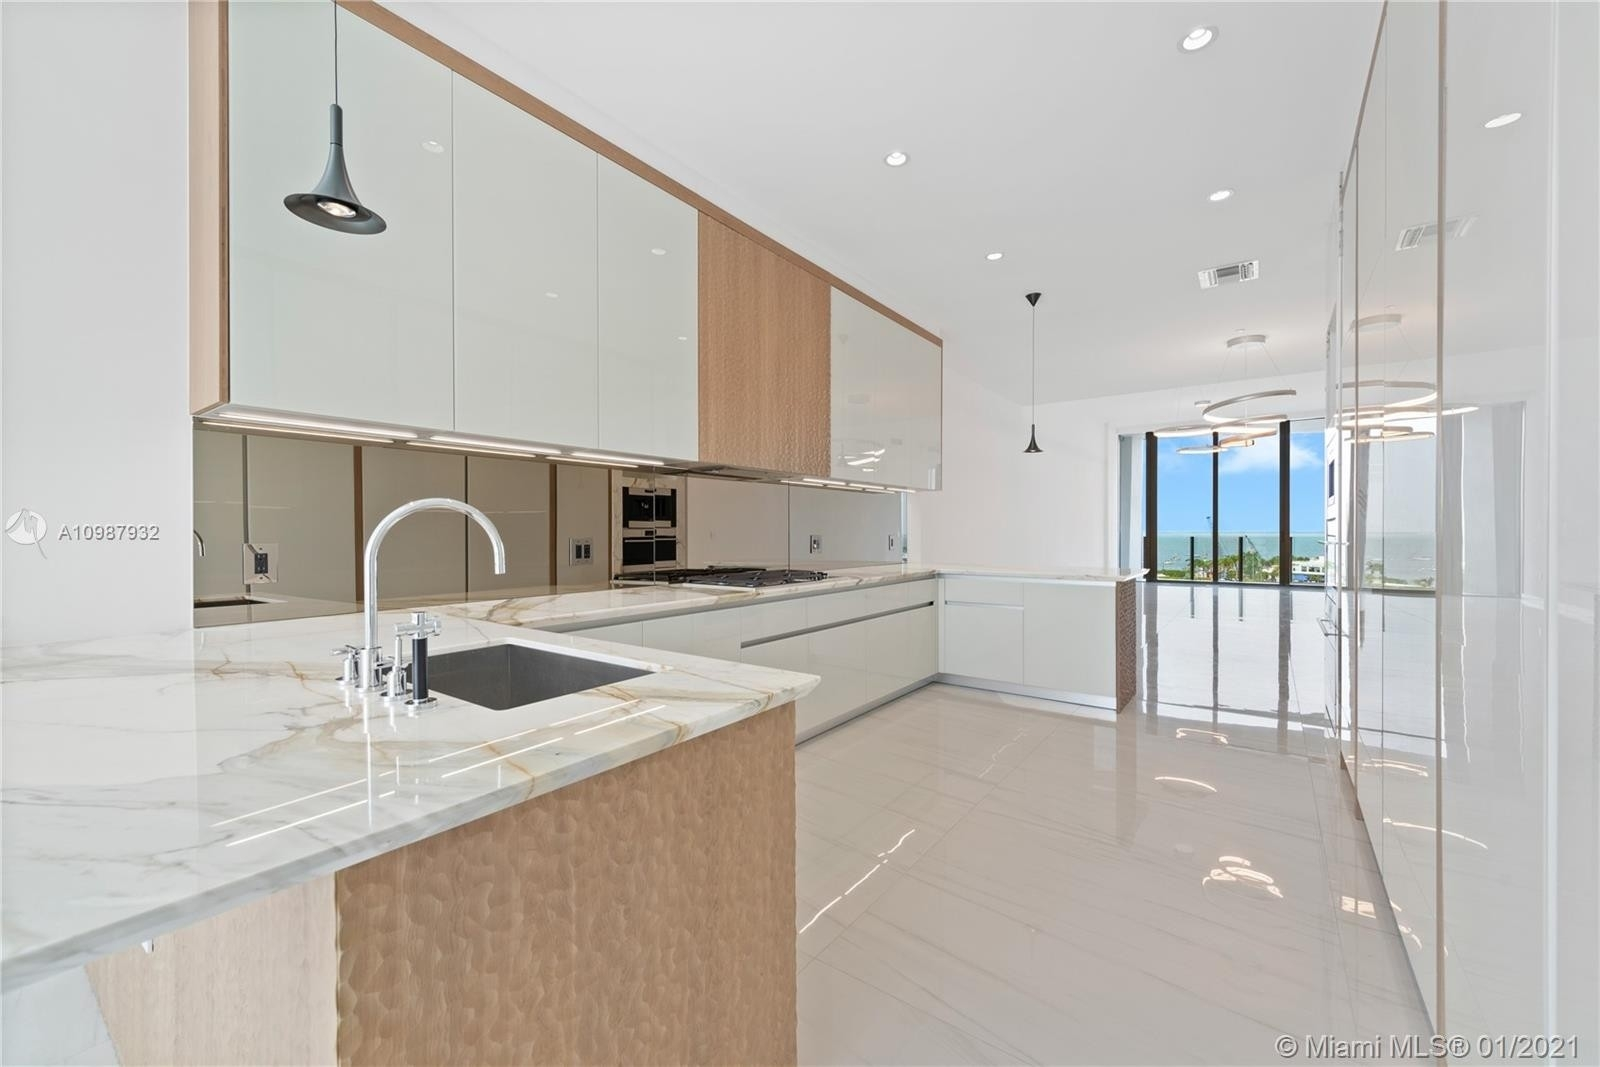 10. Condominiums for Sale at 2811 S Bayshore , 9B Coconut Grove, FL 33133